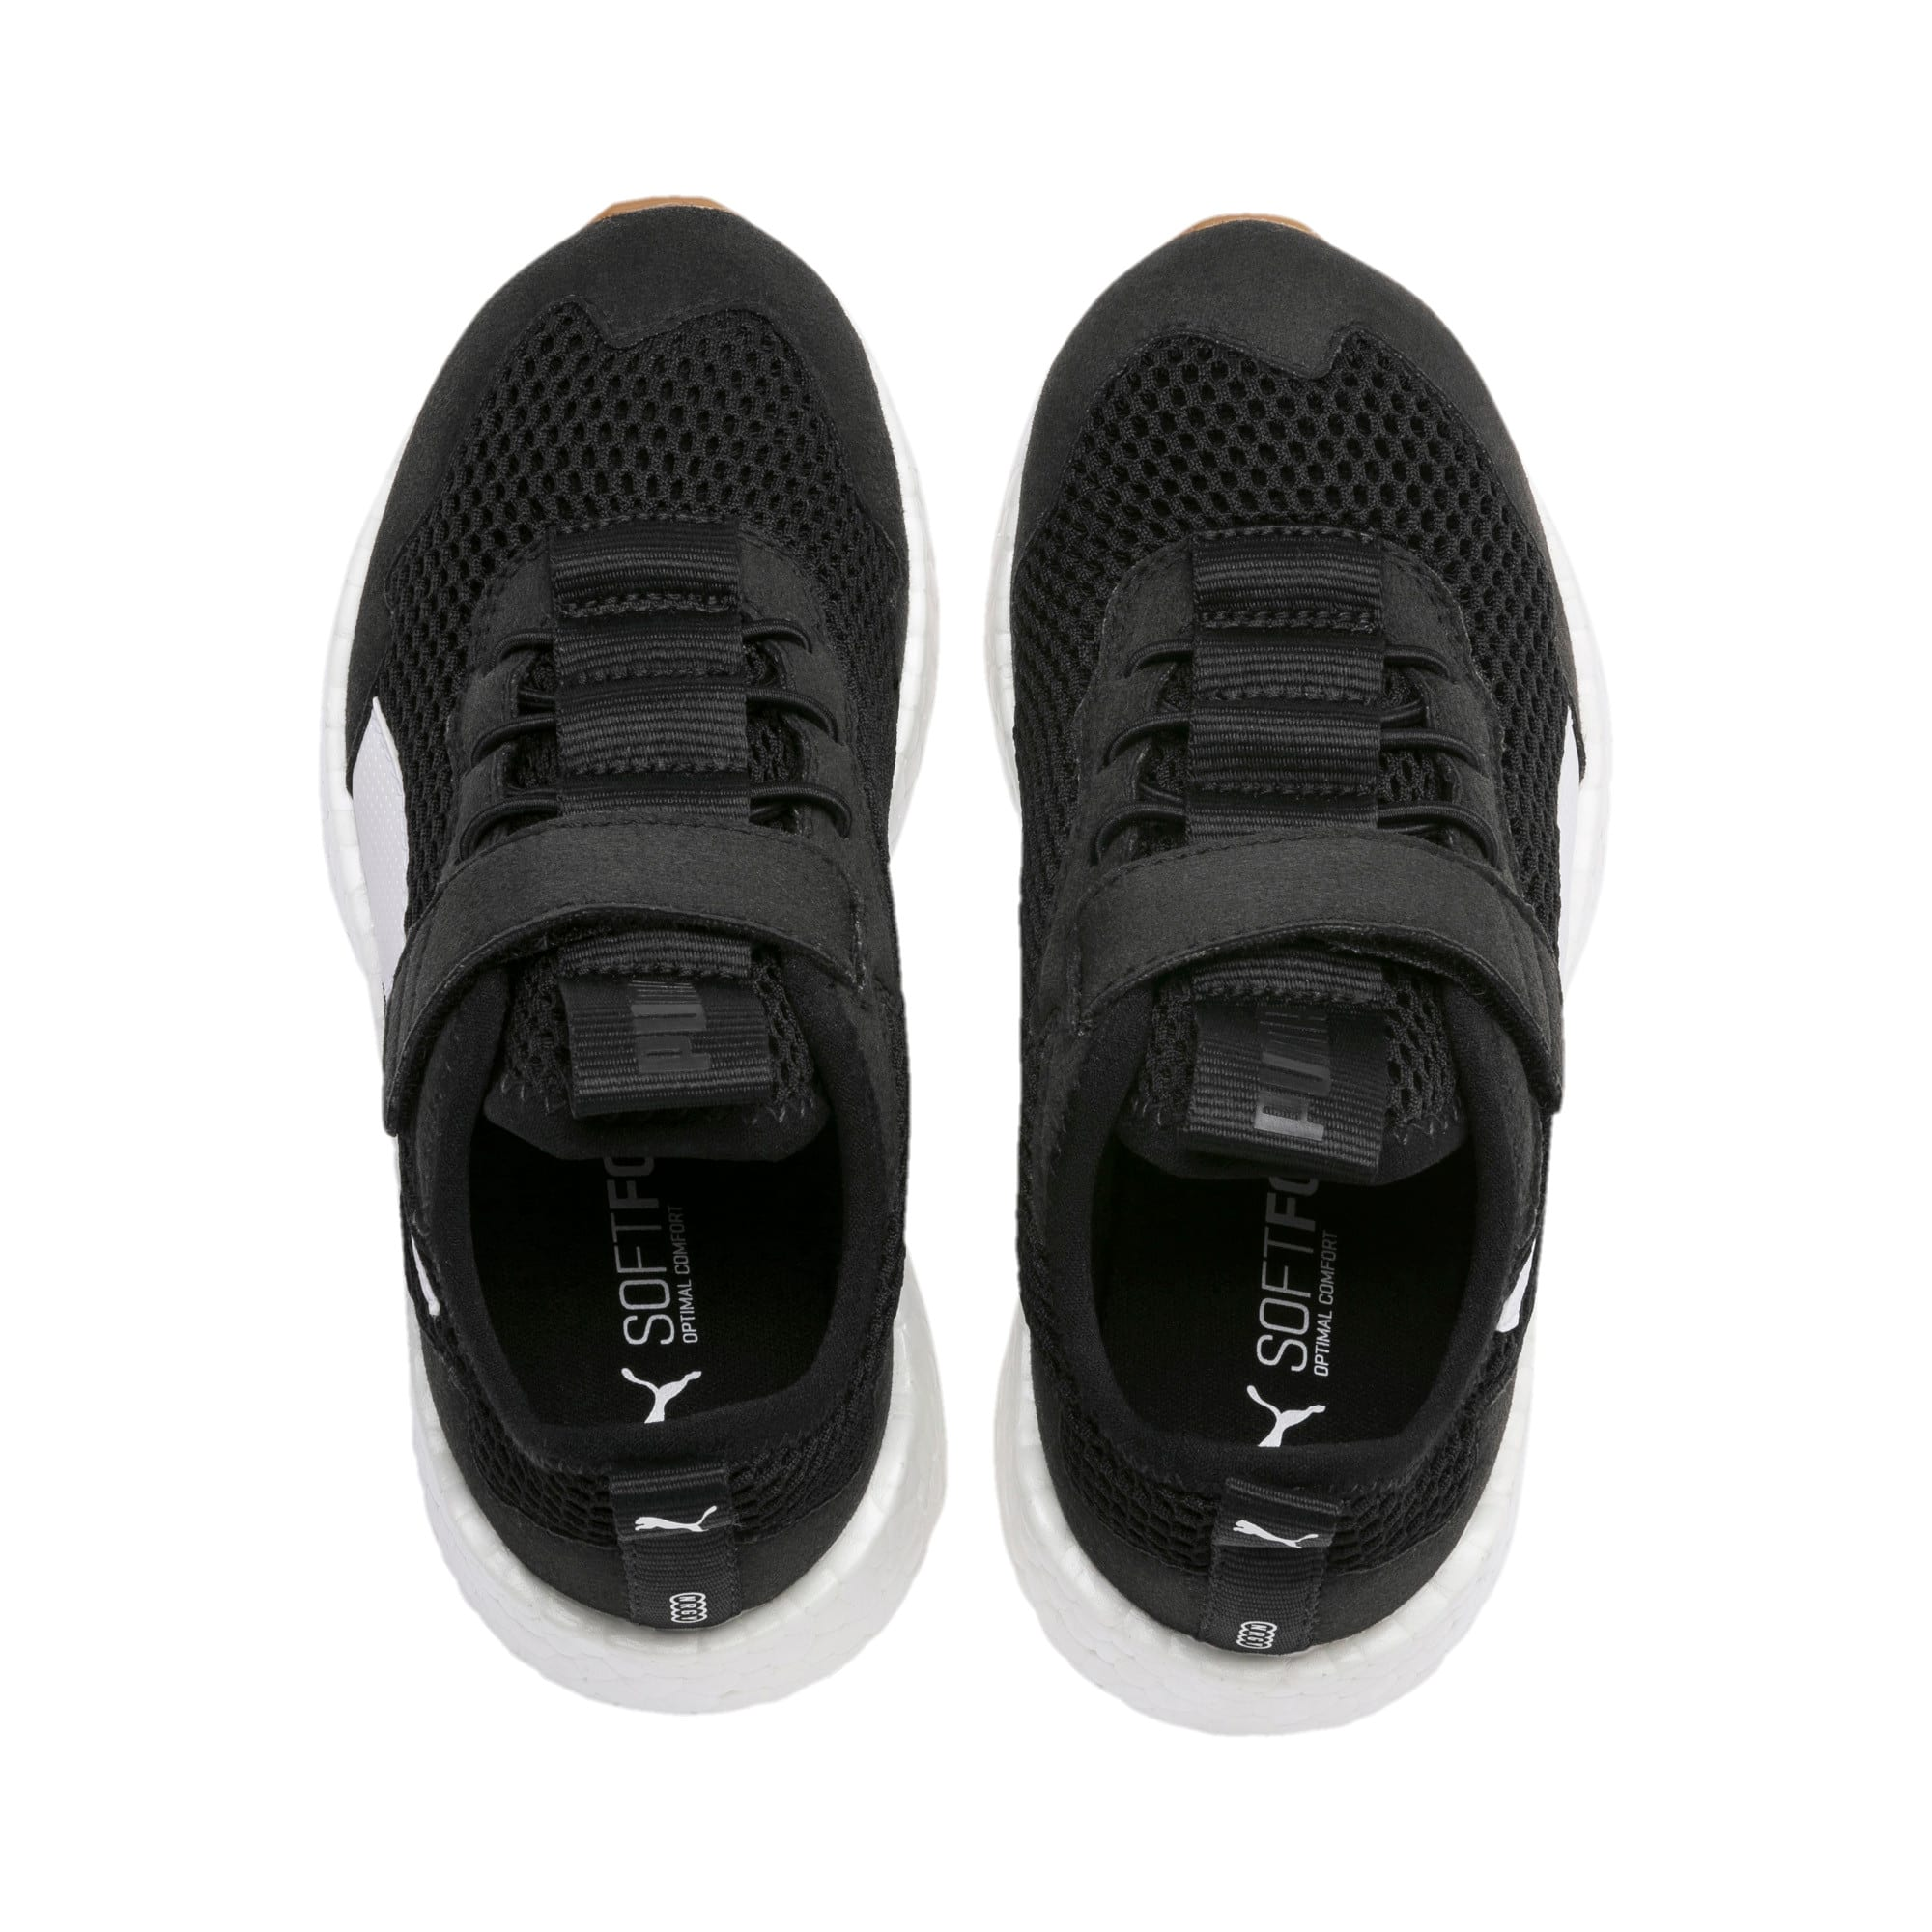 Thumbnail 6 of NRGY Neko Skim AC Kids' Trainers, Puma Black-Puma White, medium